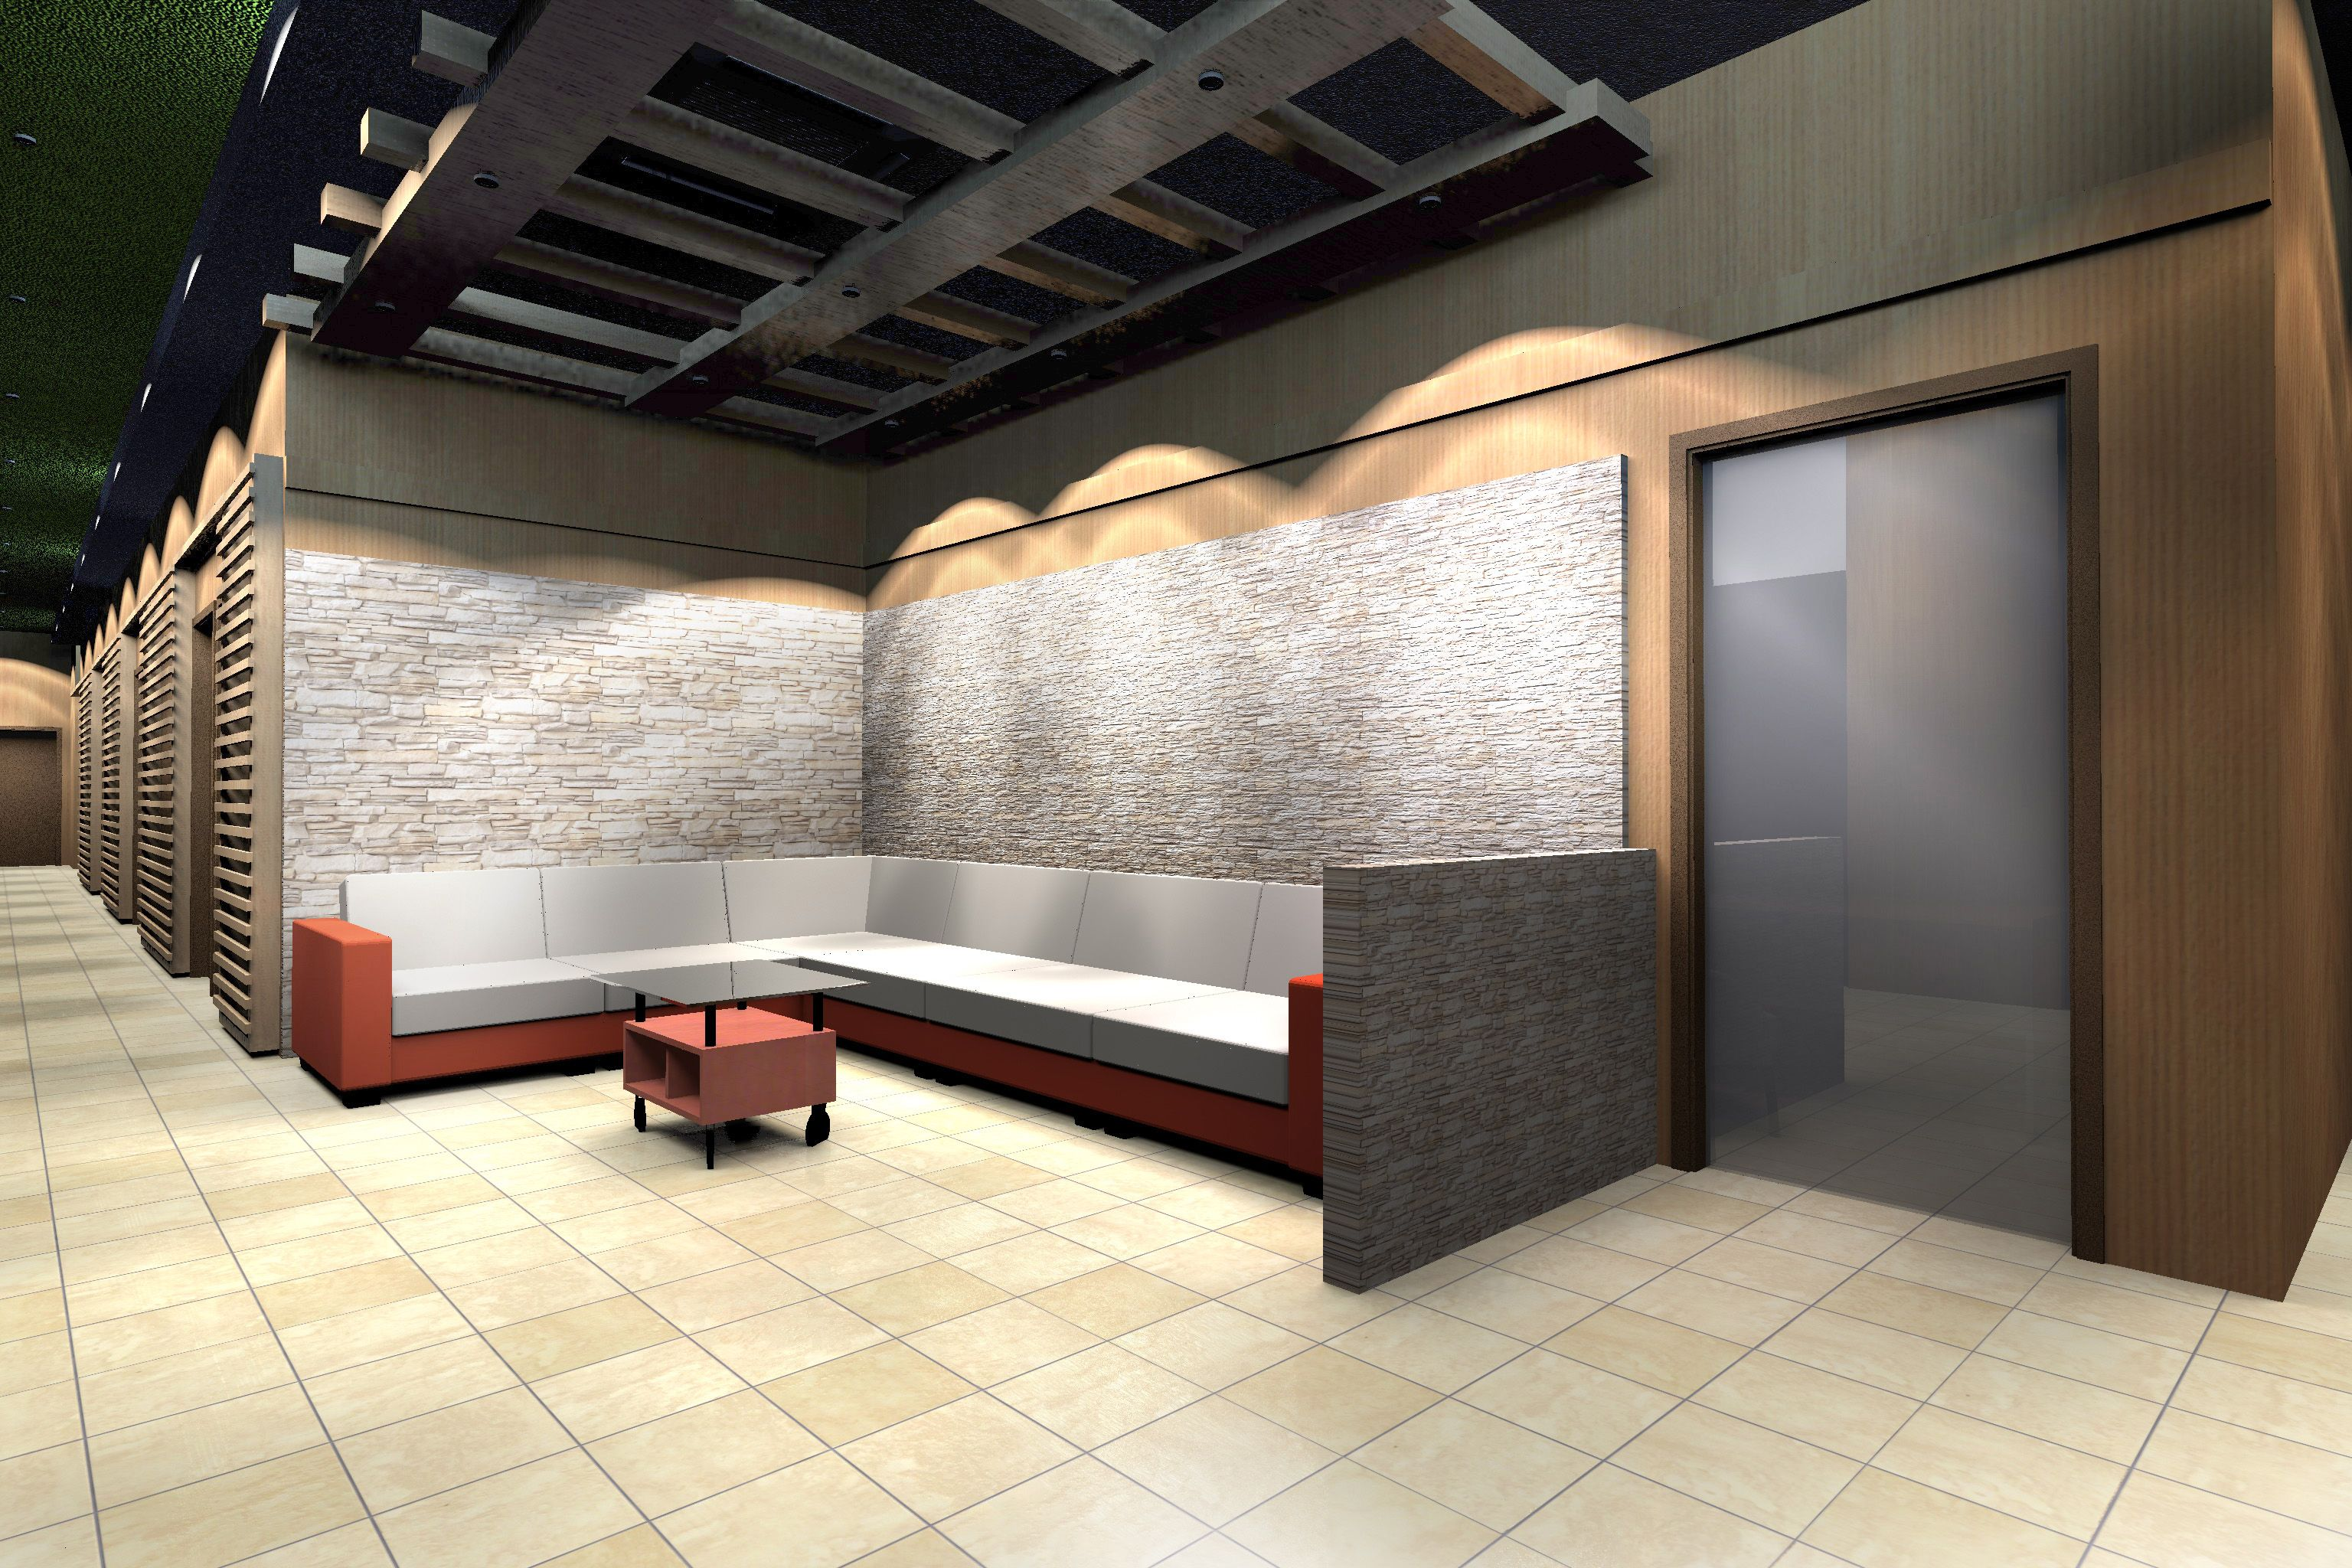 Soothing Spot Spa Interior Design Proposal. Waiting Area